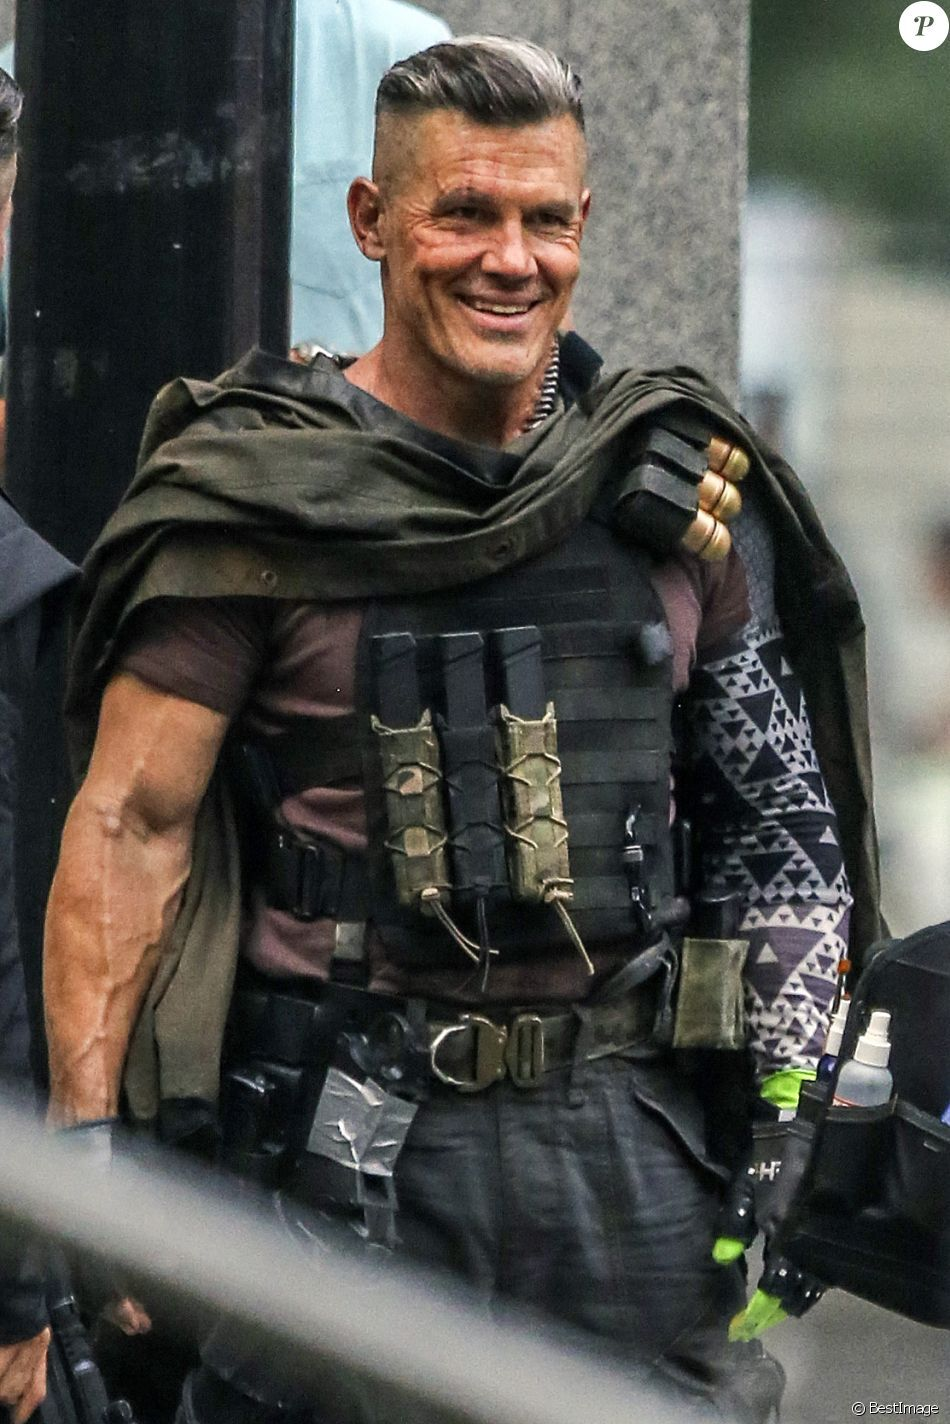 Josh-Brolin-Deadpool-2-Vest